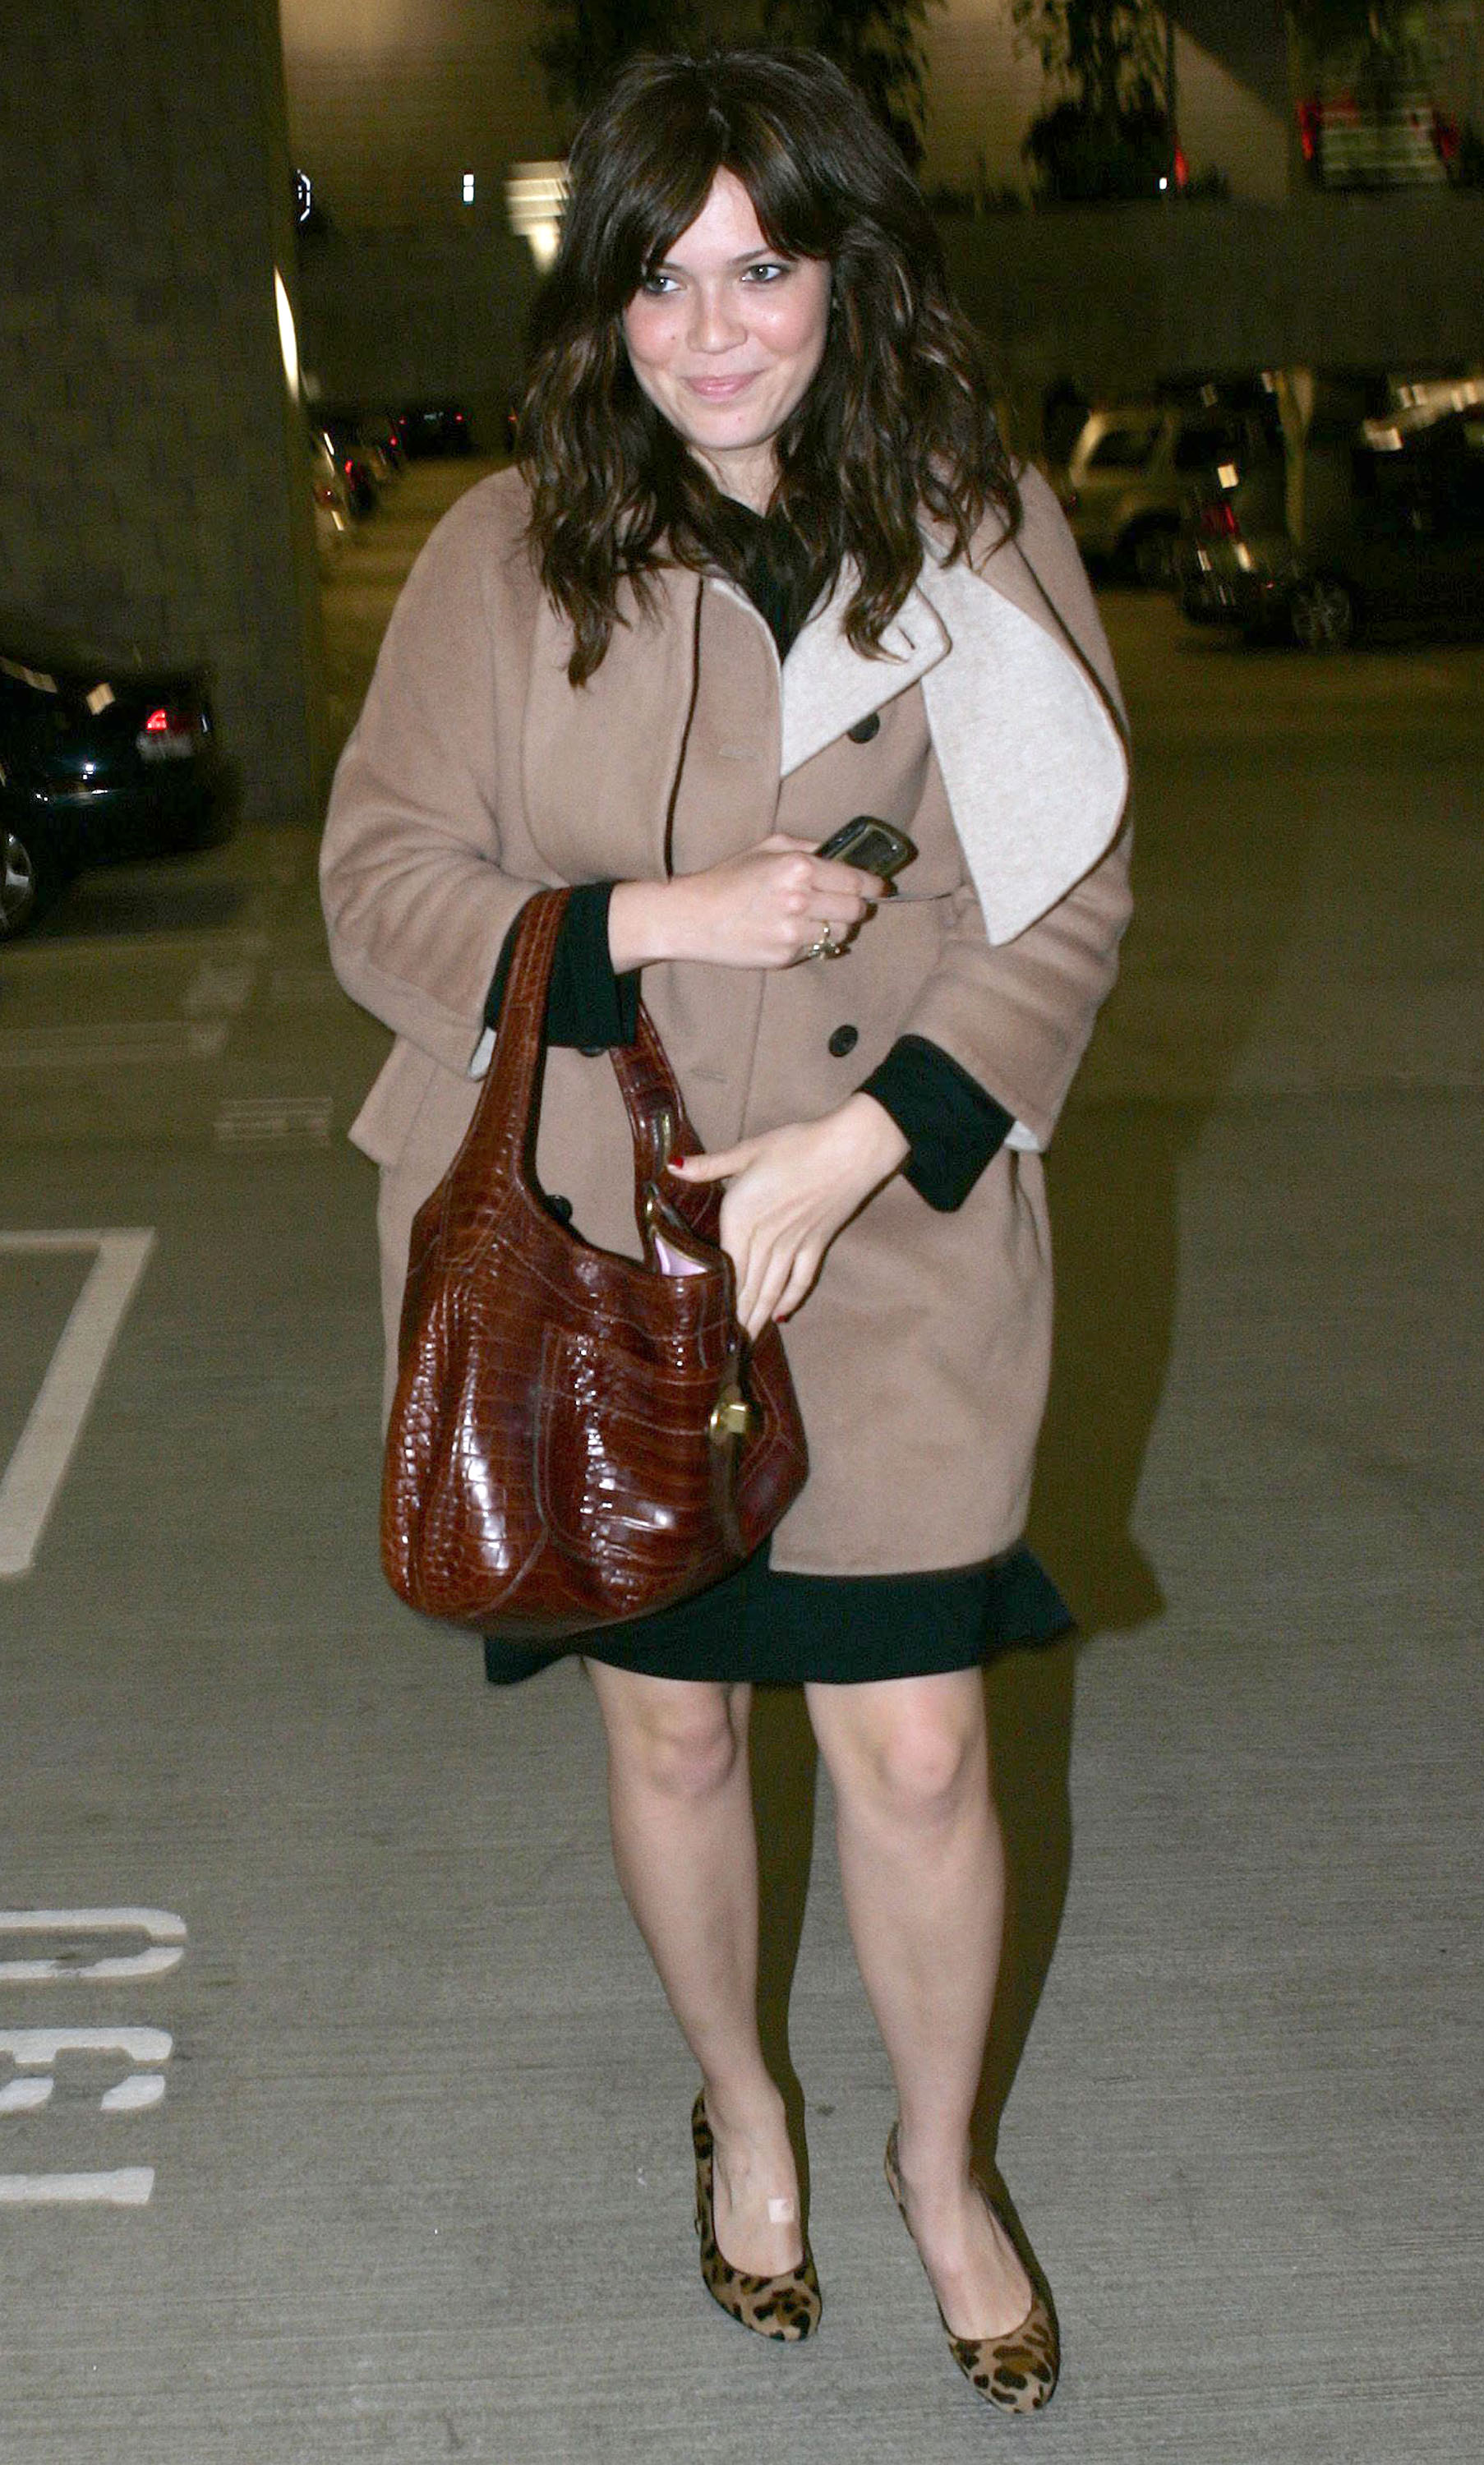 67694_celeb-city.eu_Mandy_Moore_out_and_about_in_West_Hollywood_10.12.2007_18_122_254lo.jpg